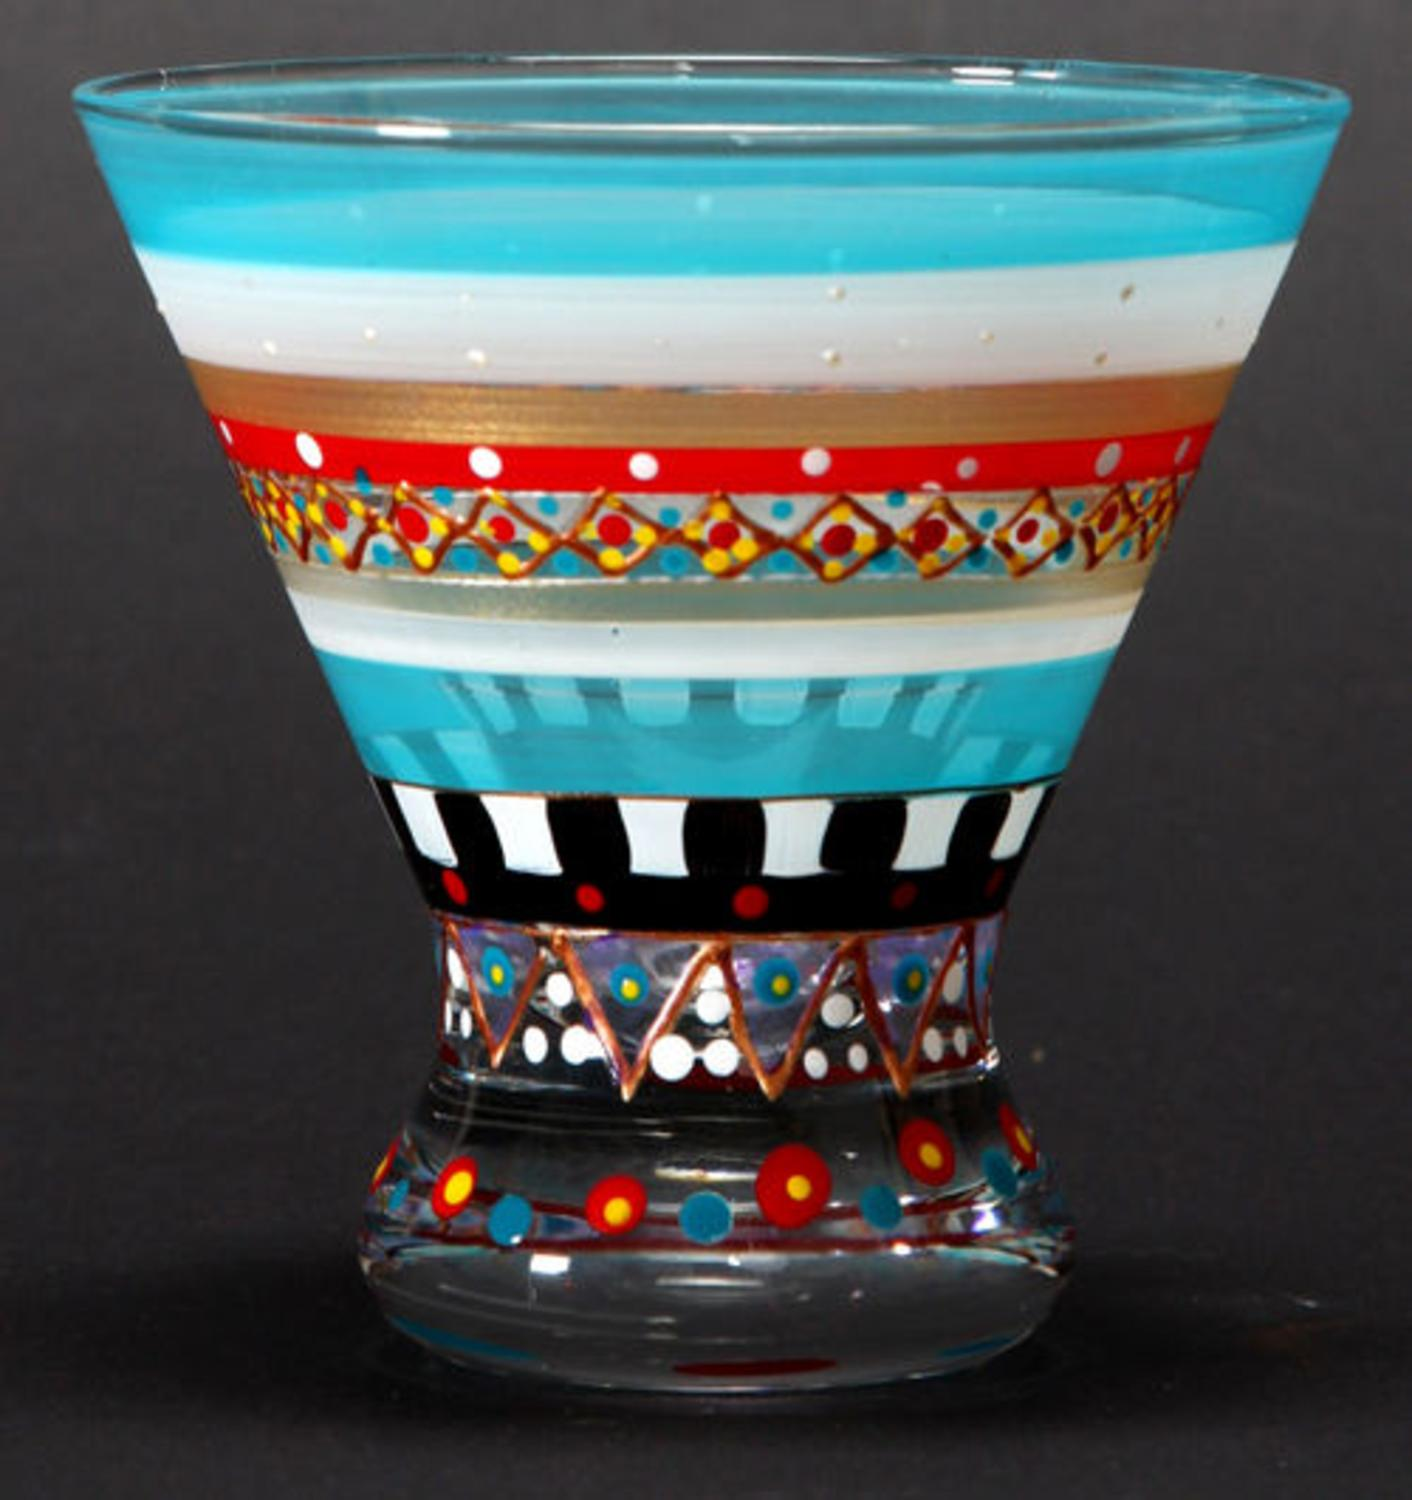 Set of 2 Mosaic Carnival Confetti Hand Painted Cosmopolitan Wine Glass - 8.25 Oz